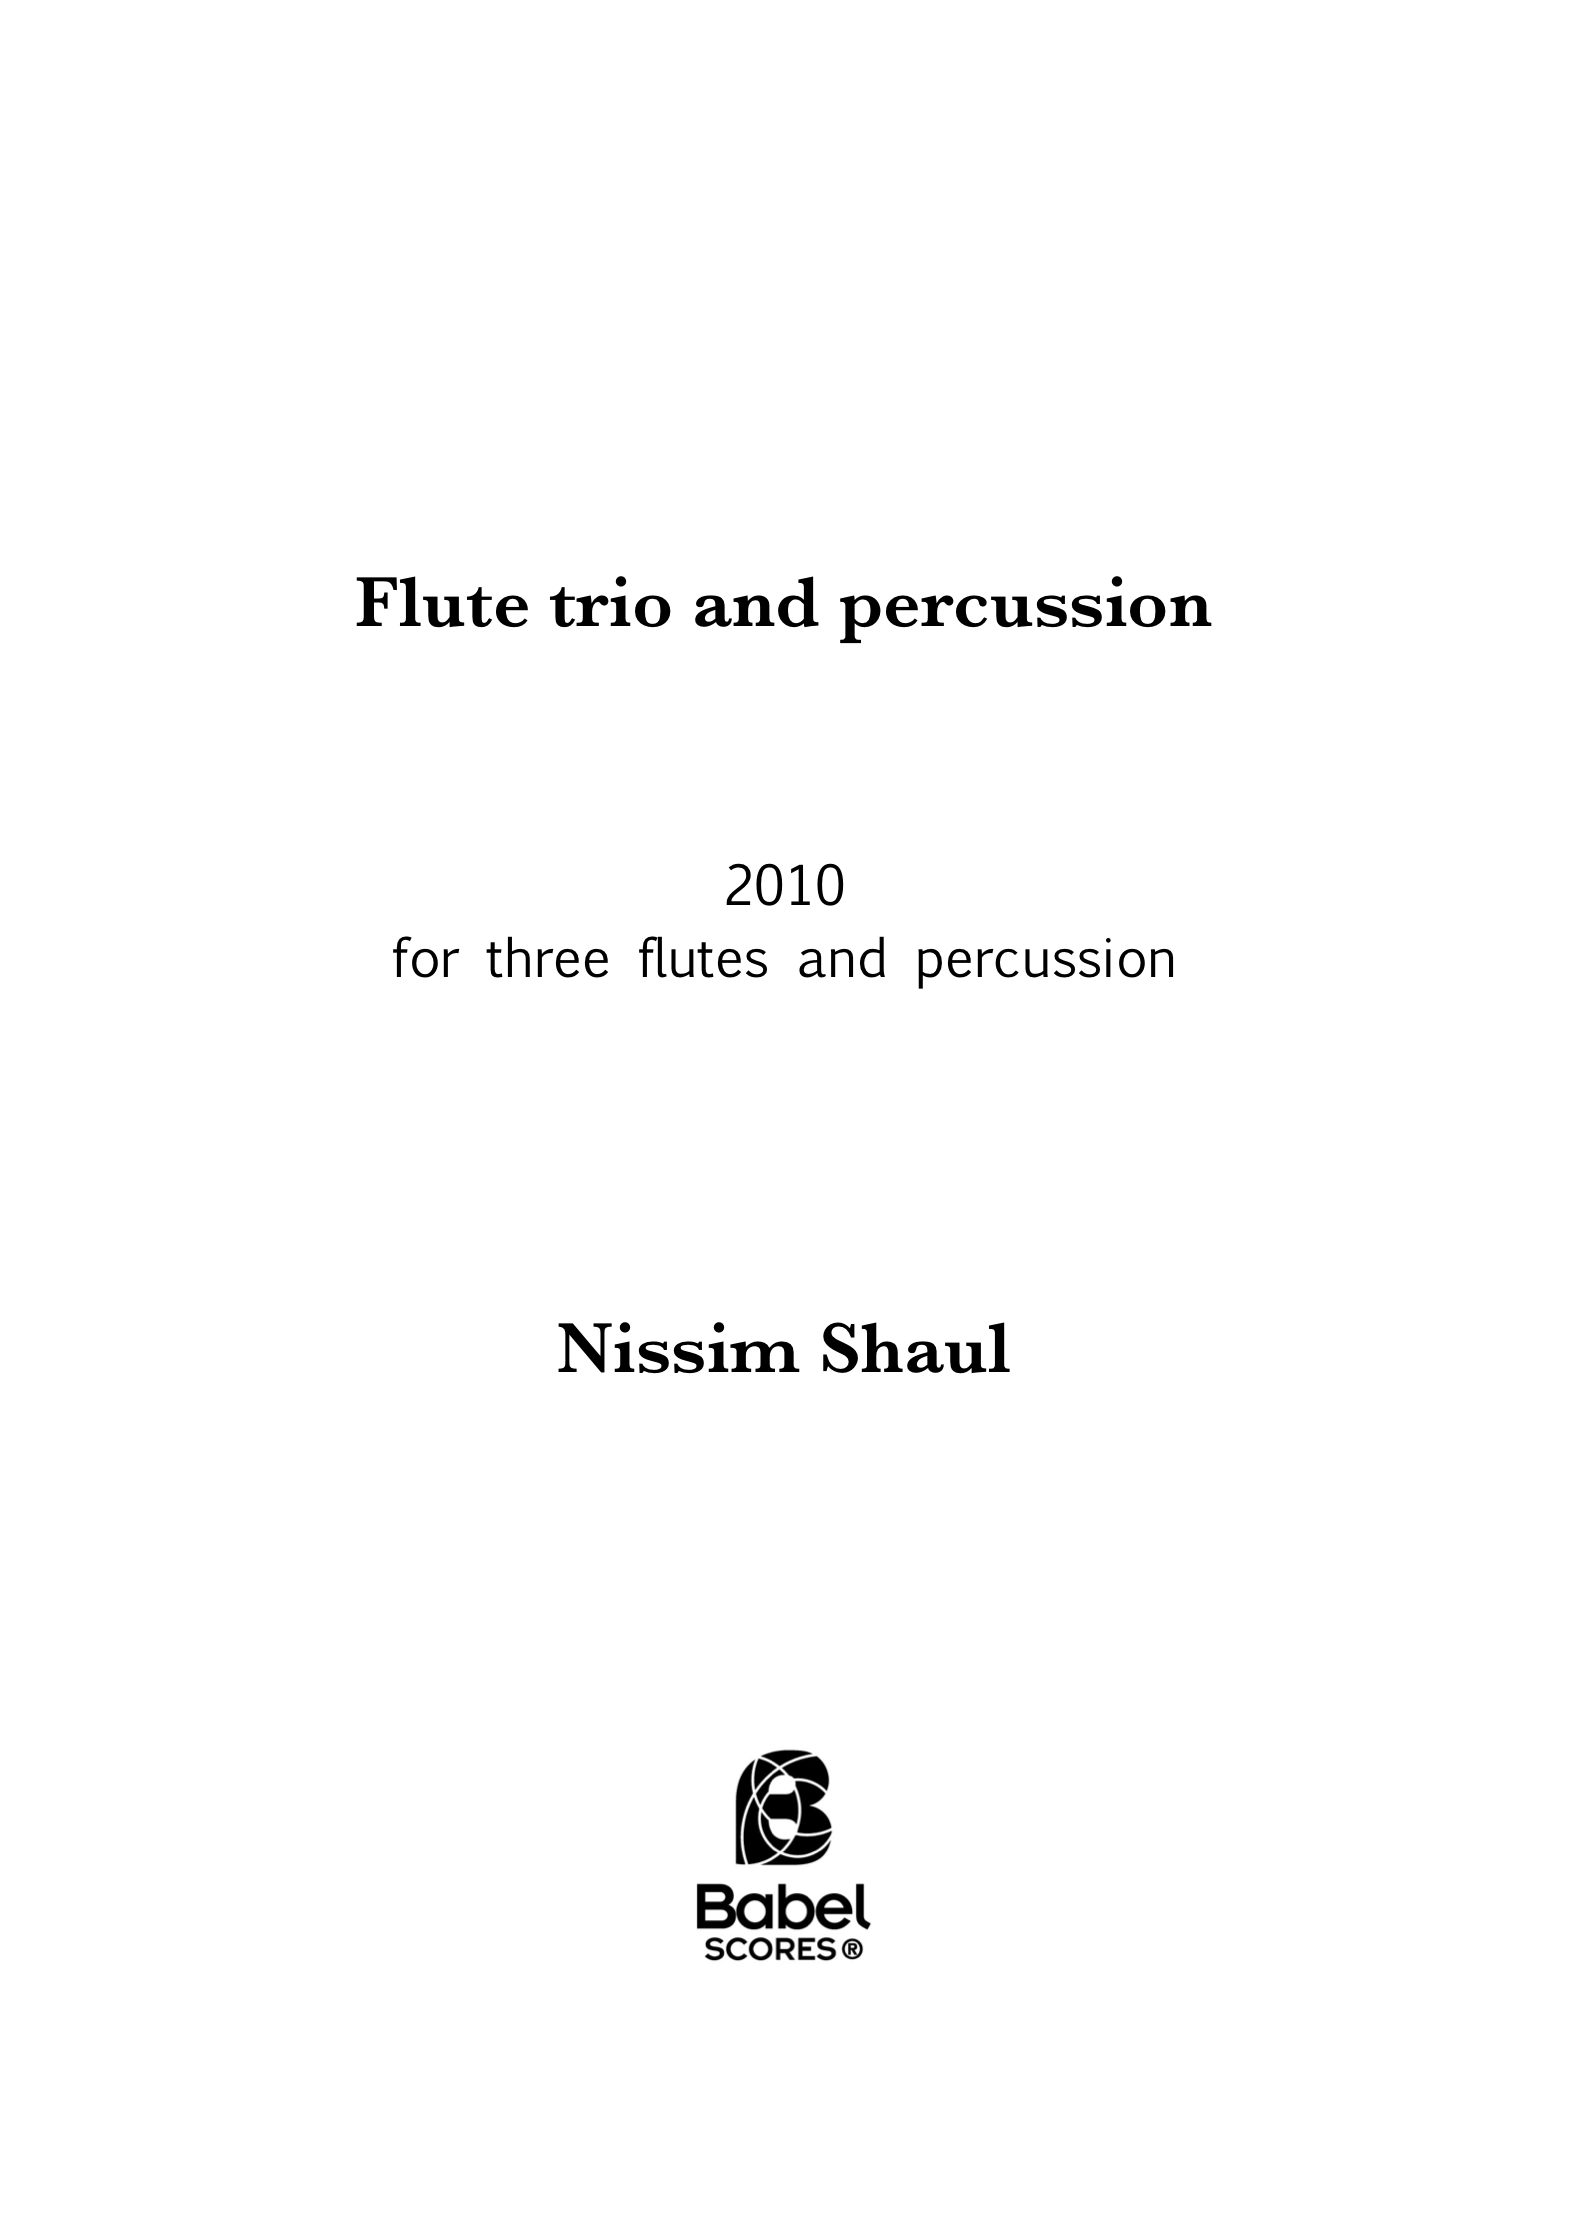 FluteTriowithPercussion_BS